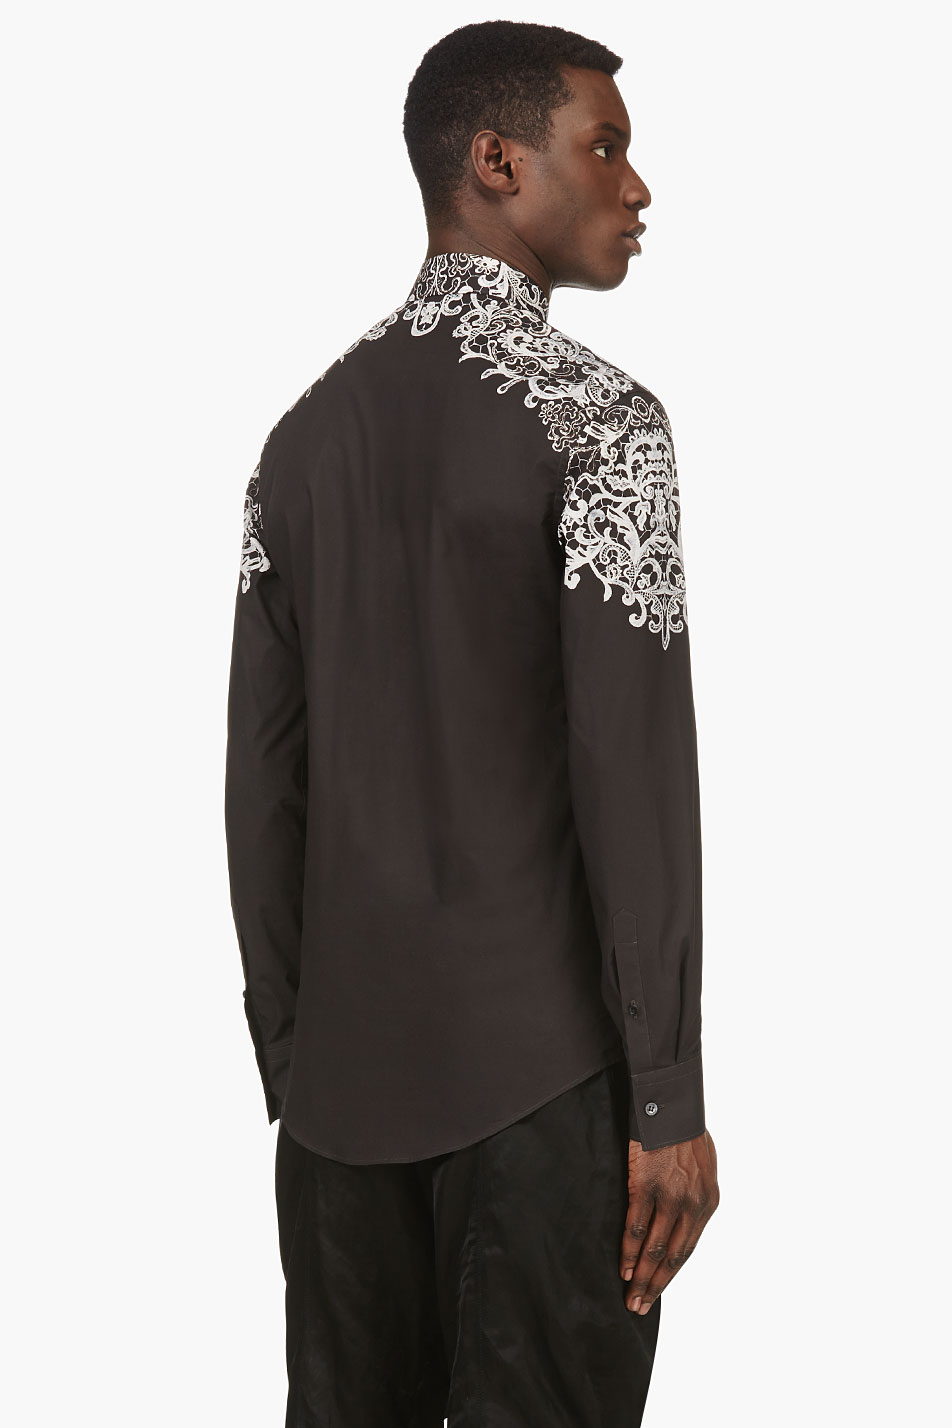 Lyst alexander mcqueen black and ivory lace print shirt for Alexander mcqueen shirt men